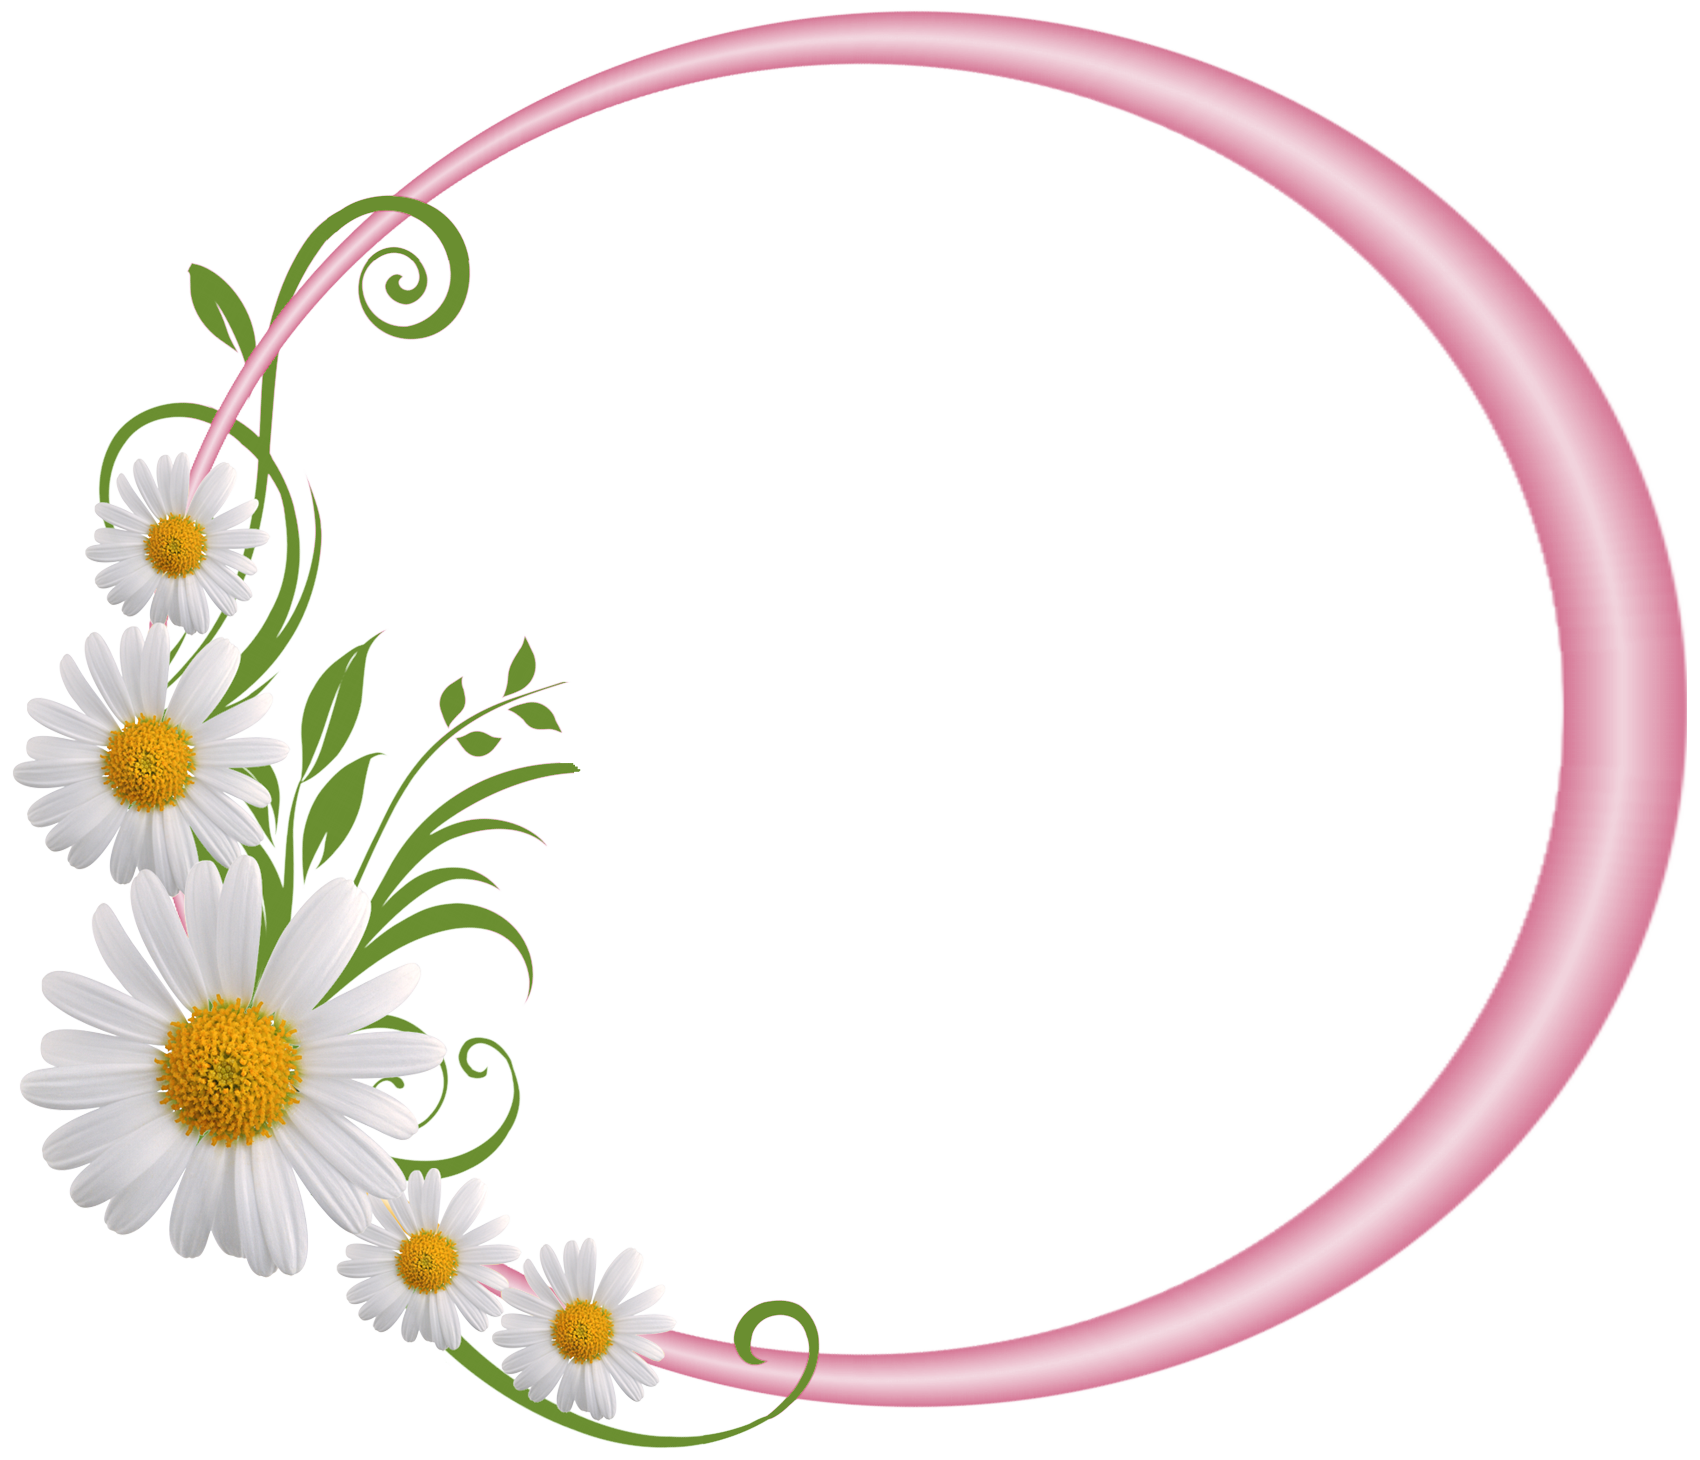 Frame clipart round Daisies Hej with Daisies Pink